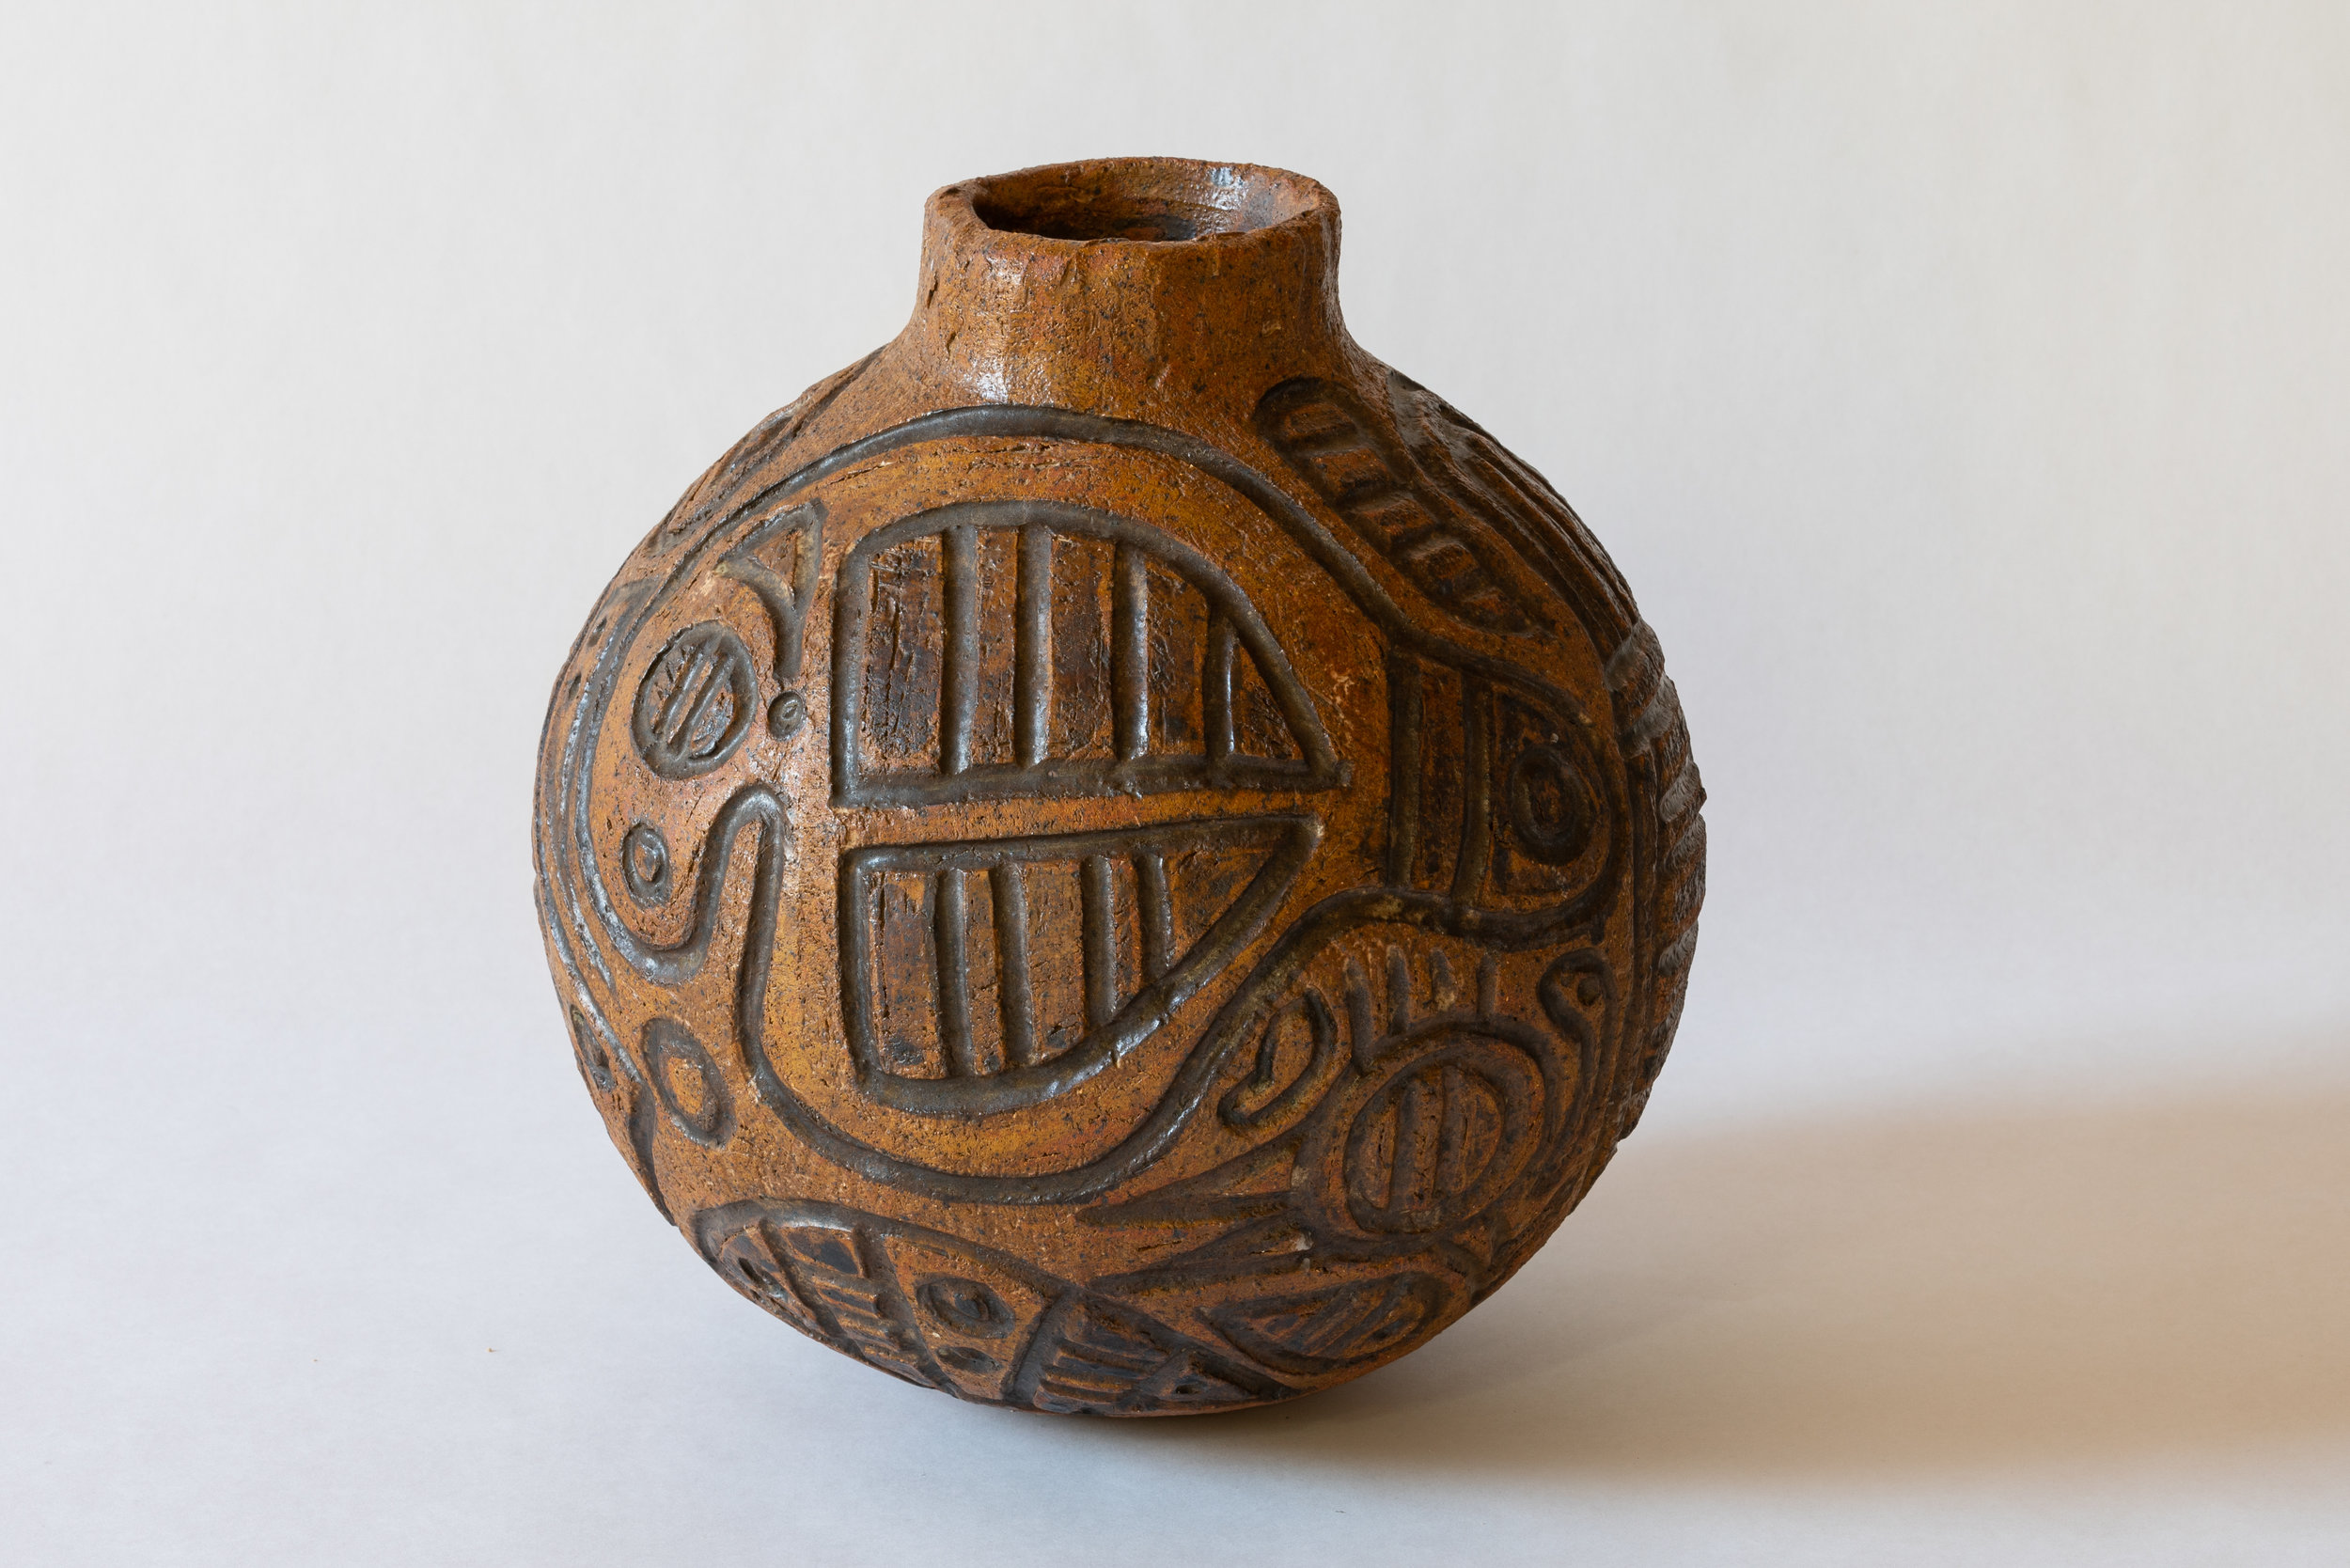 Thancoupie ,  Peetharee story - Dugong & Emu , 1980, hand built earthenware, slip and oxide decoration on incised designs, 30 x 30 x 30 cm. Collection of Bathurst Regional Art Gallery, purchase. Photograph: David Roma